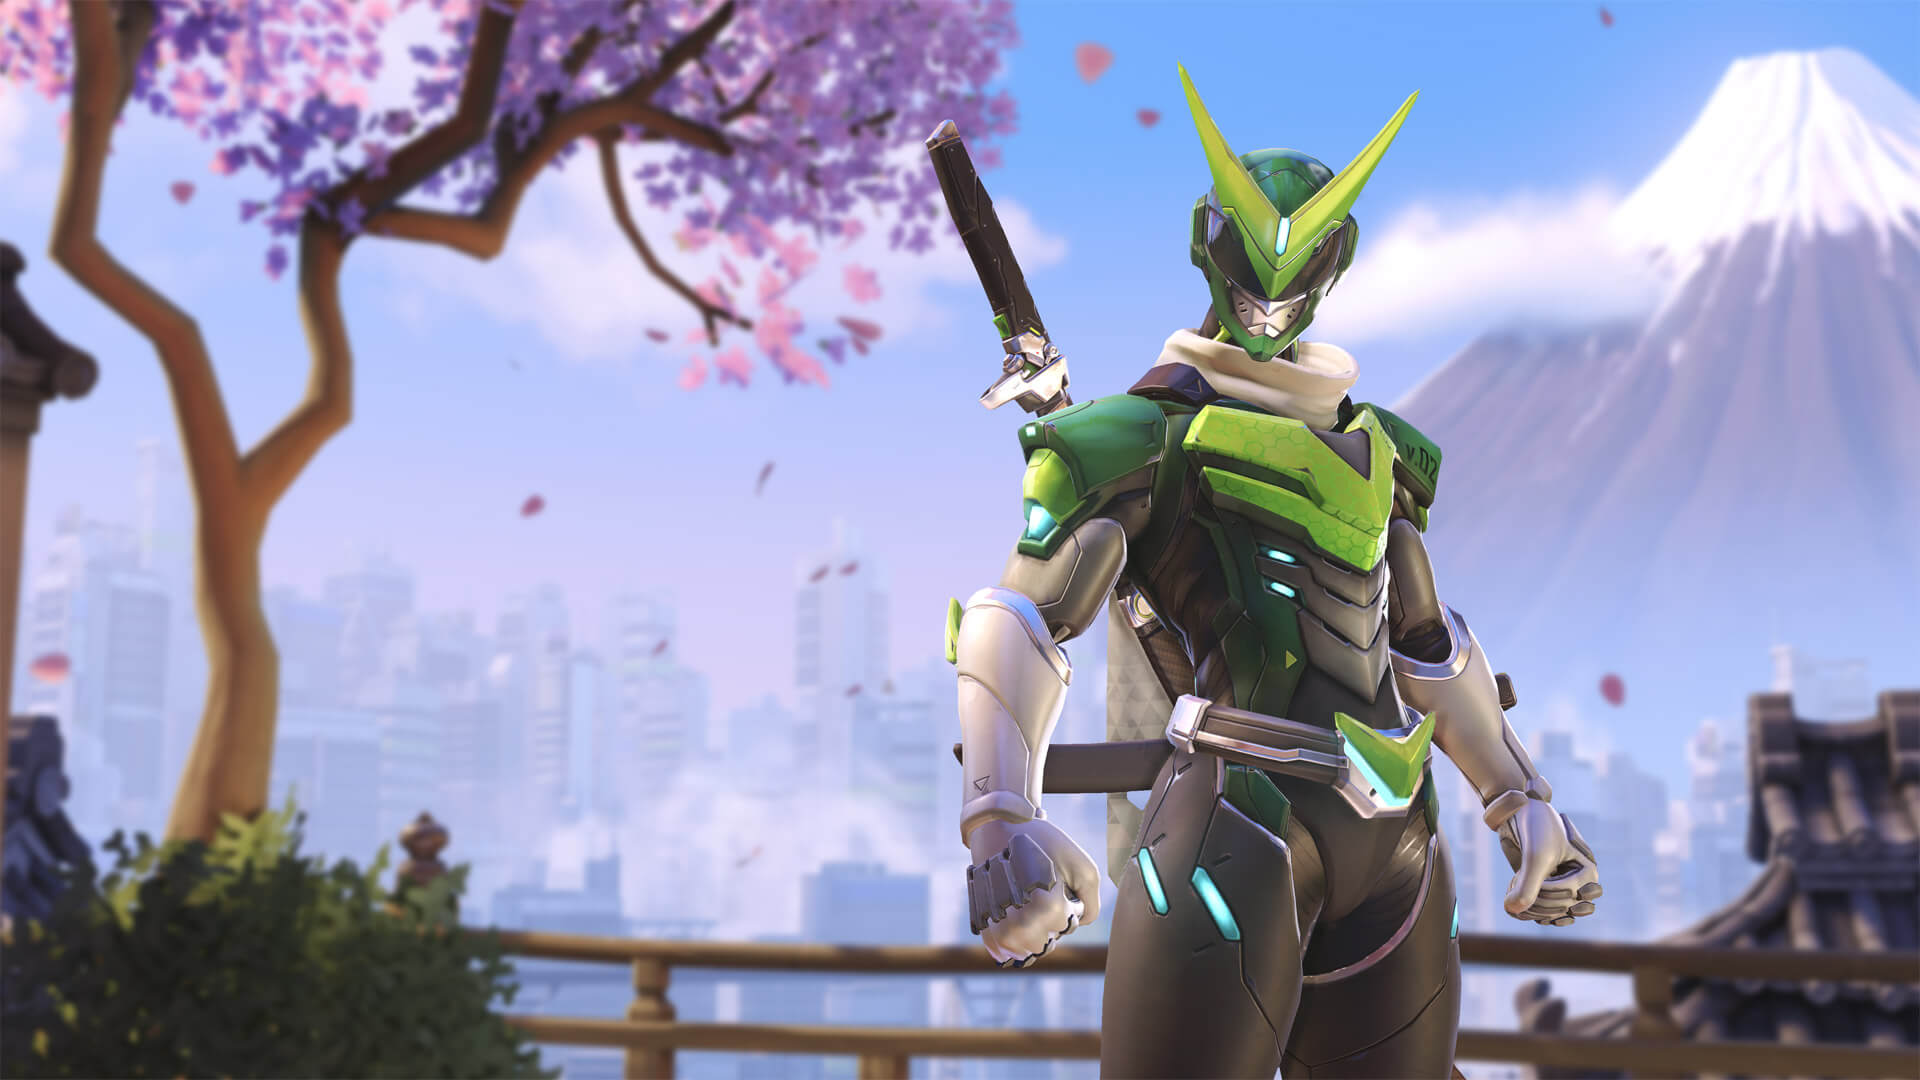 Second Anniversary of Overwatch Means One Thing: More Stuff!